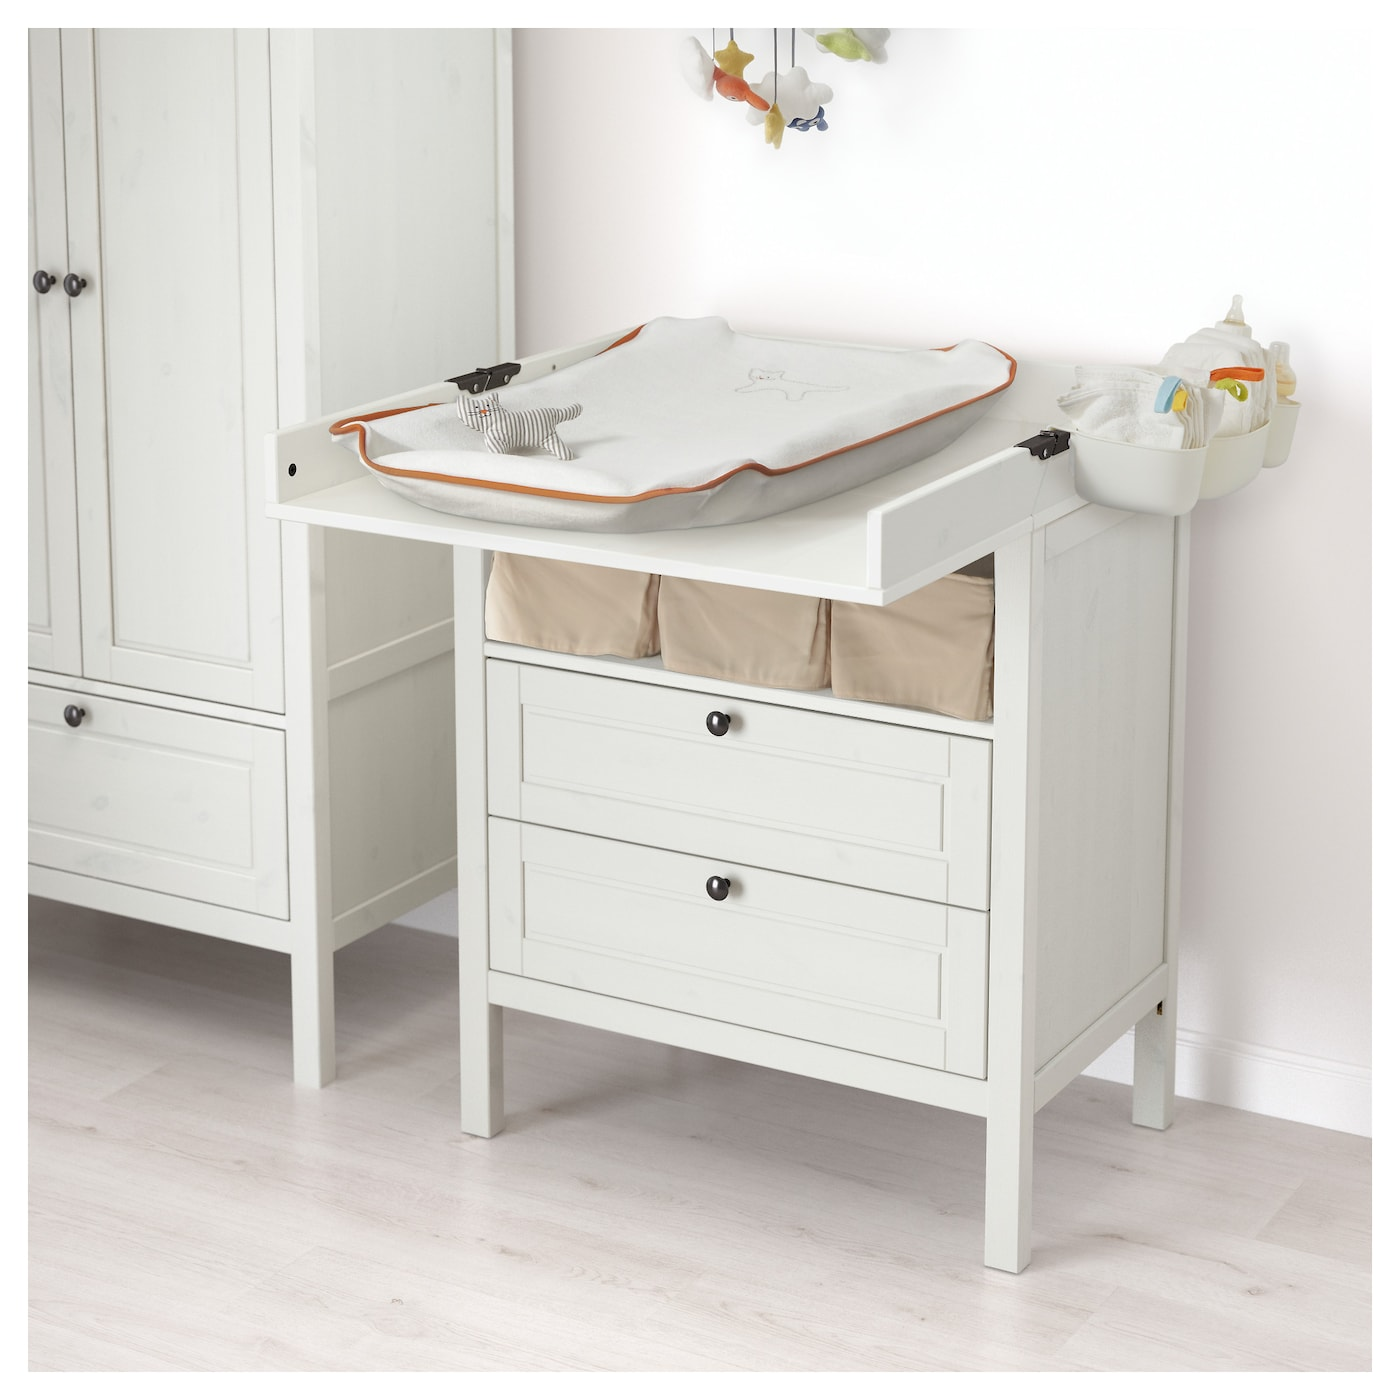 baby dresser luxury and home furniture cute gray target white cheap design fresh cribs changing decorating tables with of dressers fascinating chest mattresses table drawers